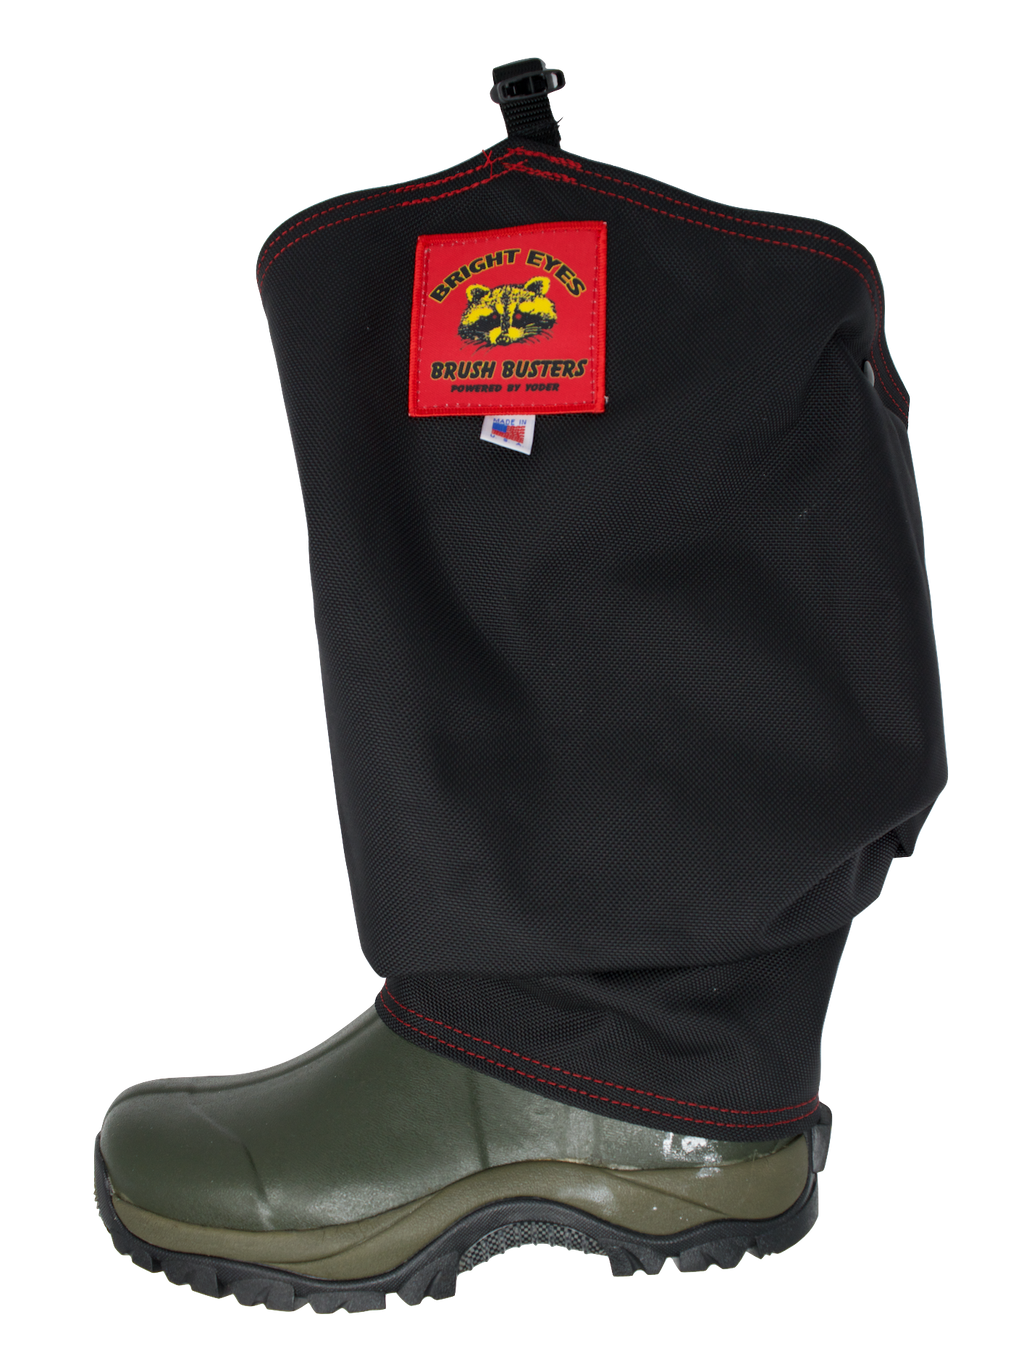 Cougar Boot w/ BrushBuster Chaps